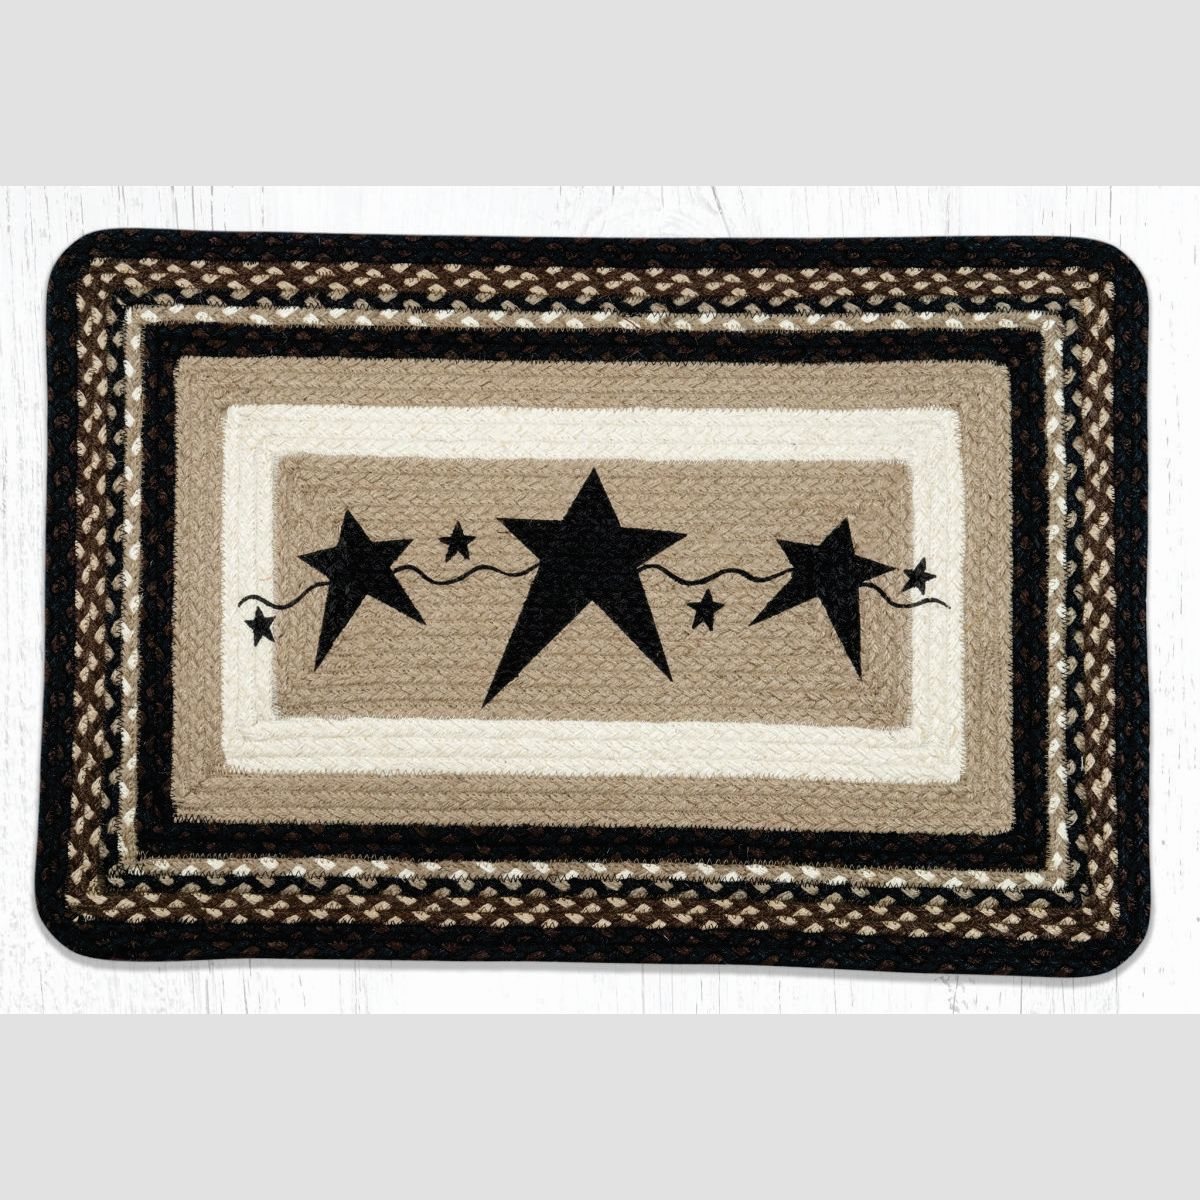 Primitive Stars Black Braided Jute Oblong Area Rug 313 Morning Star Home Accents